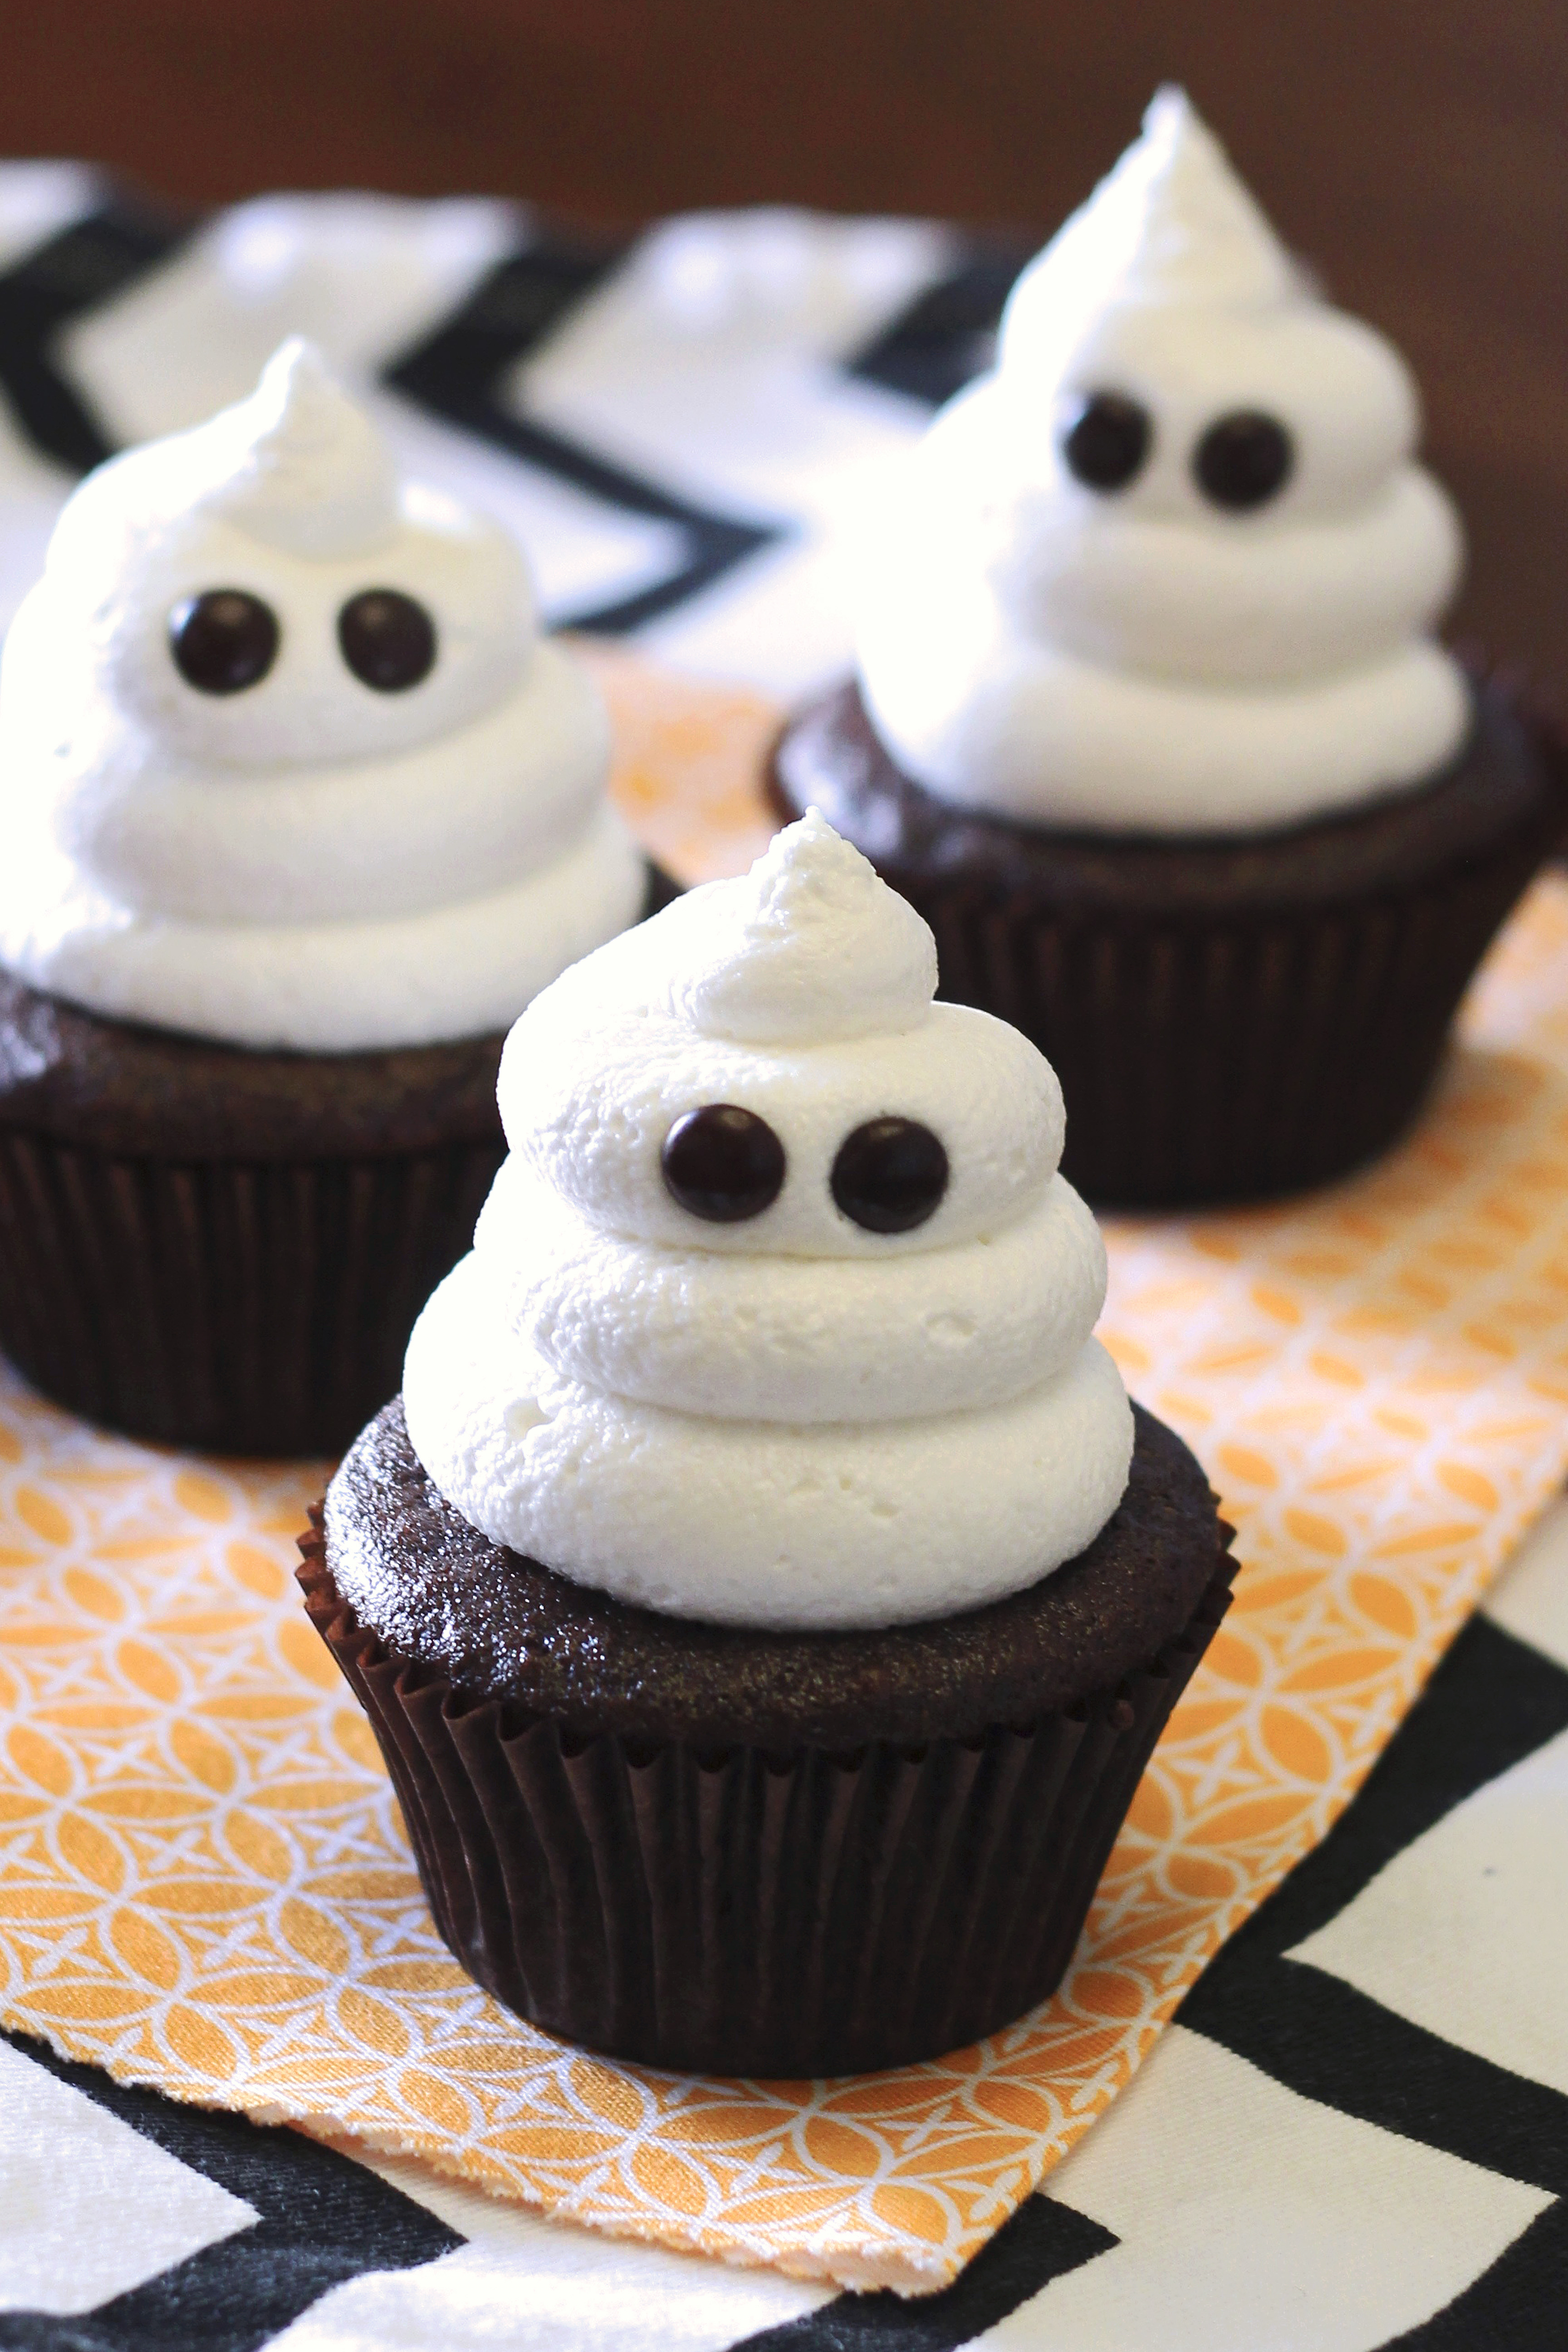 Gluten Free Vegan Ghost Cupcakes. Just about the cutest, spookiest cupcakes you ever did see!